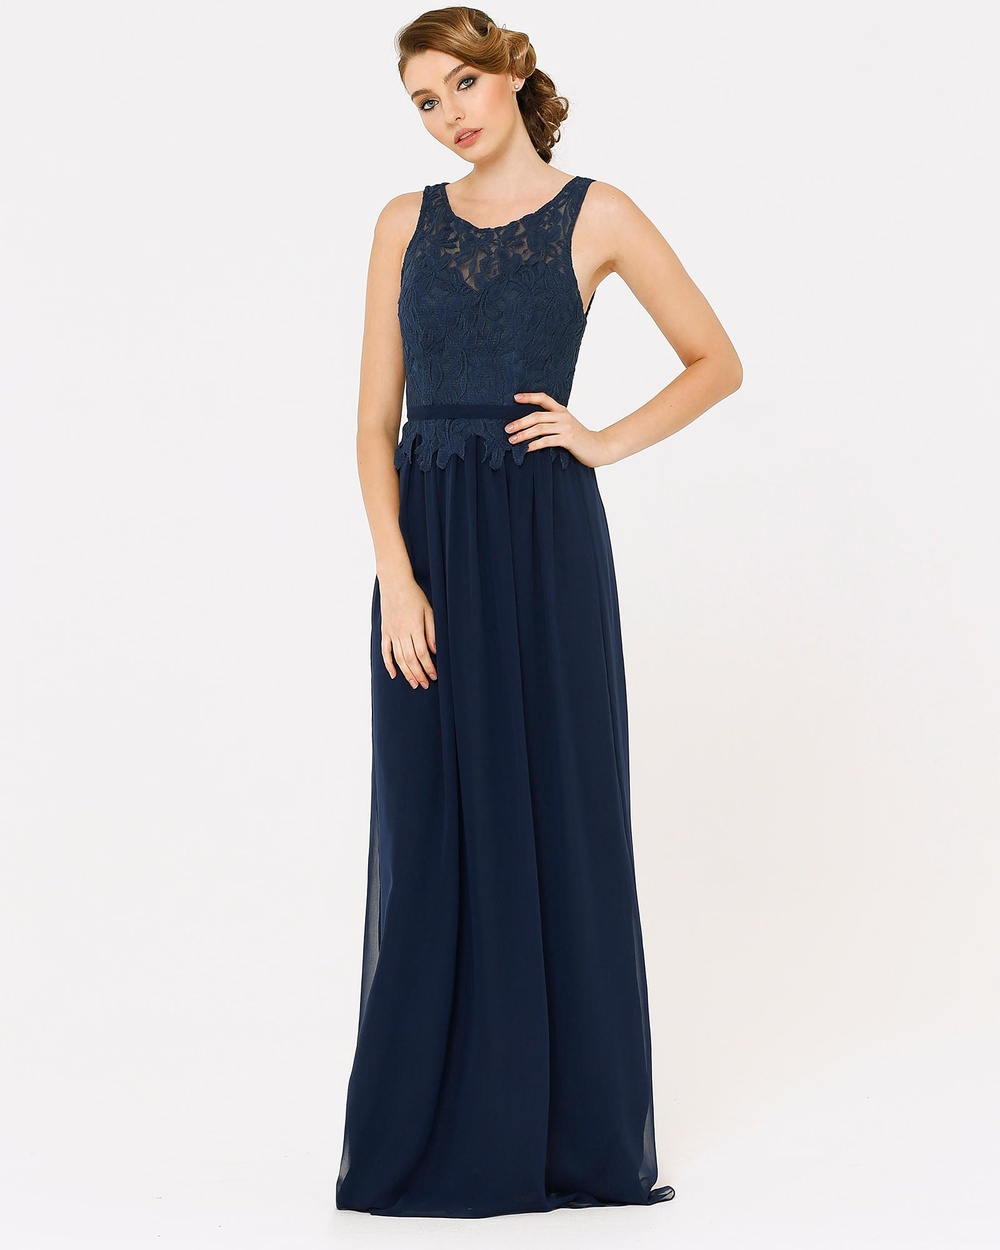 Tania Olsen Designs Sophia Dress Bridesmaid Dresses navy Sophia Dress